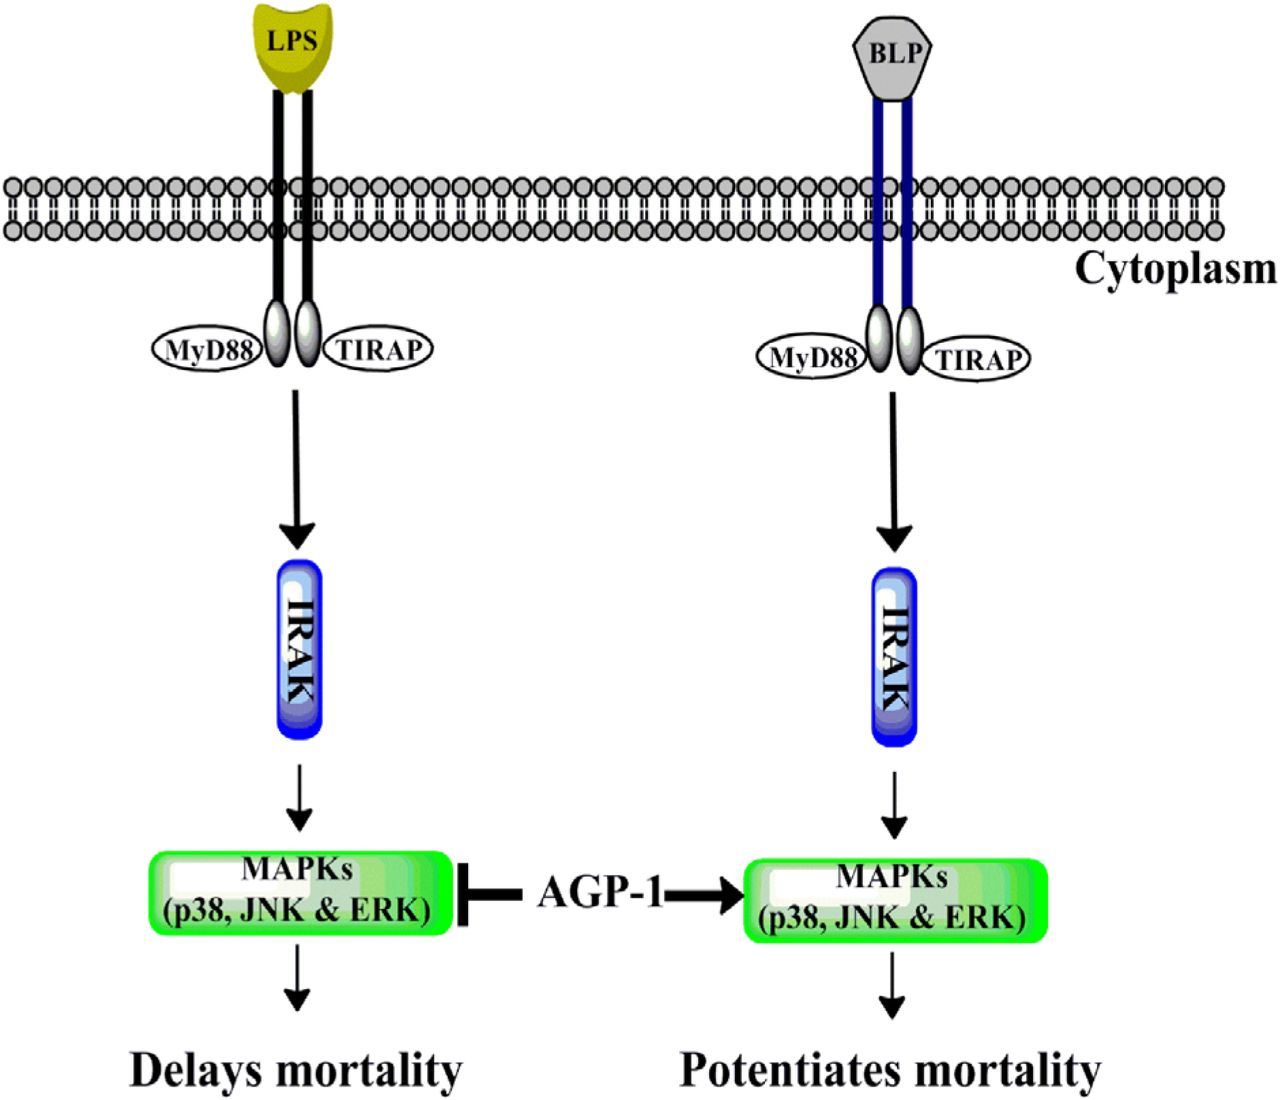 Schematic representation of selective inhibition of MAPKs by AGP-1 induced by LPS but not BLP AGP-1 selectively inhibits p-38, JNK and ERK MAPKs induced by TLR-4 activation thereby delaying the mortality. However, AGP-1 had no significant effect on the TLR-2 induced MAPK activation but potentiated the BLP mediated mortality.